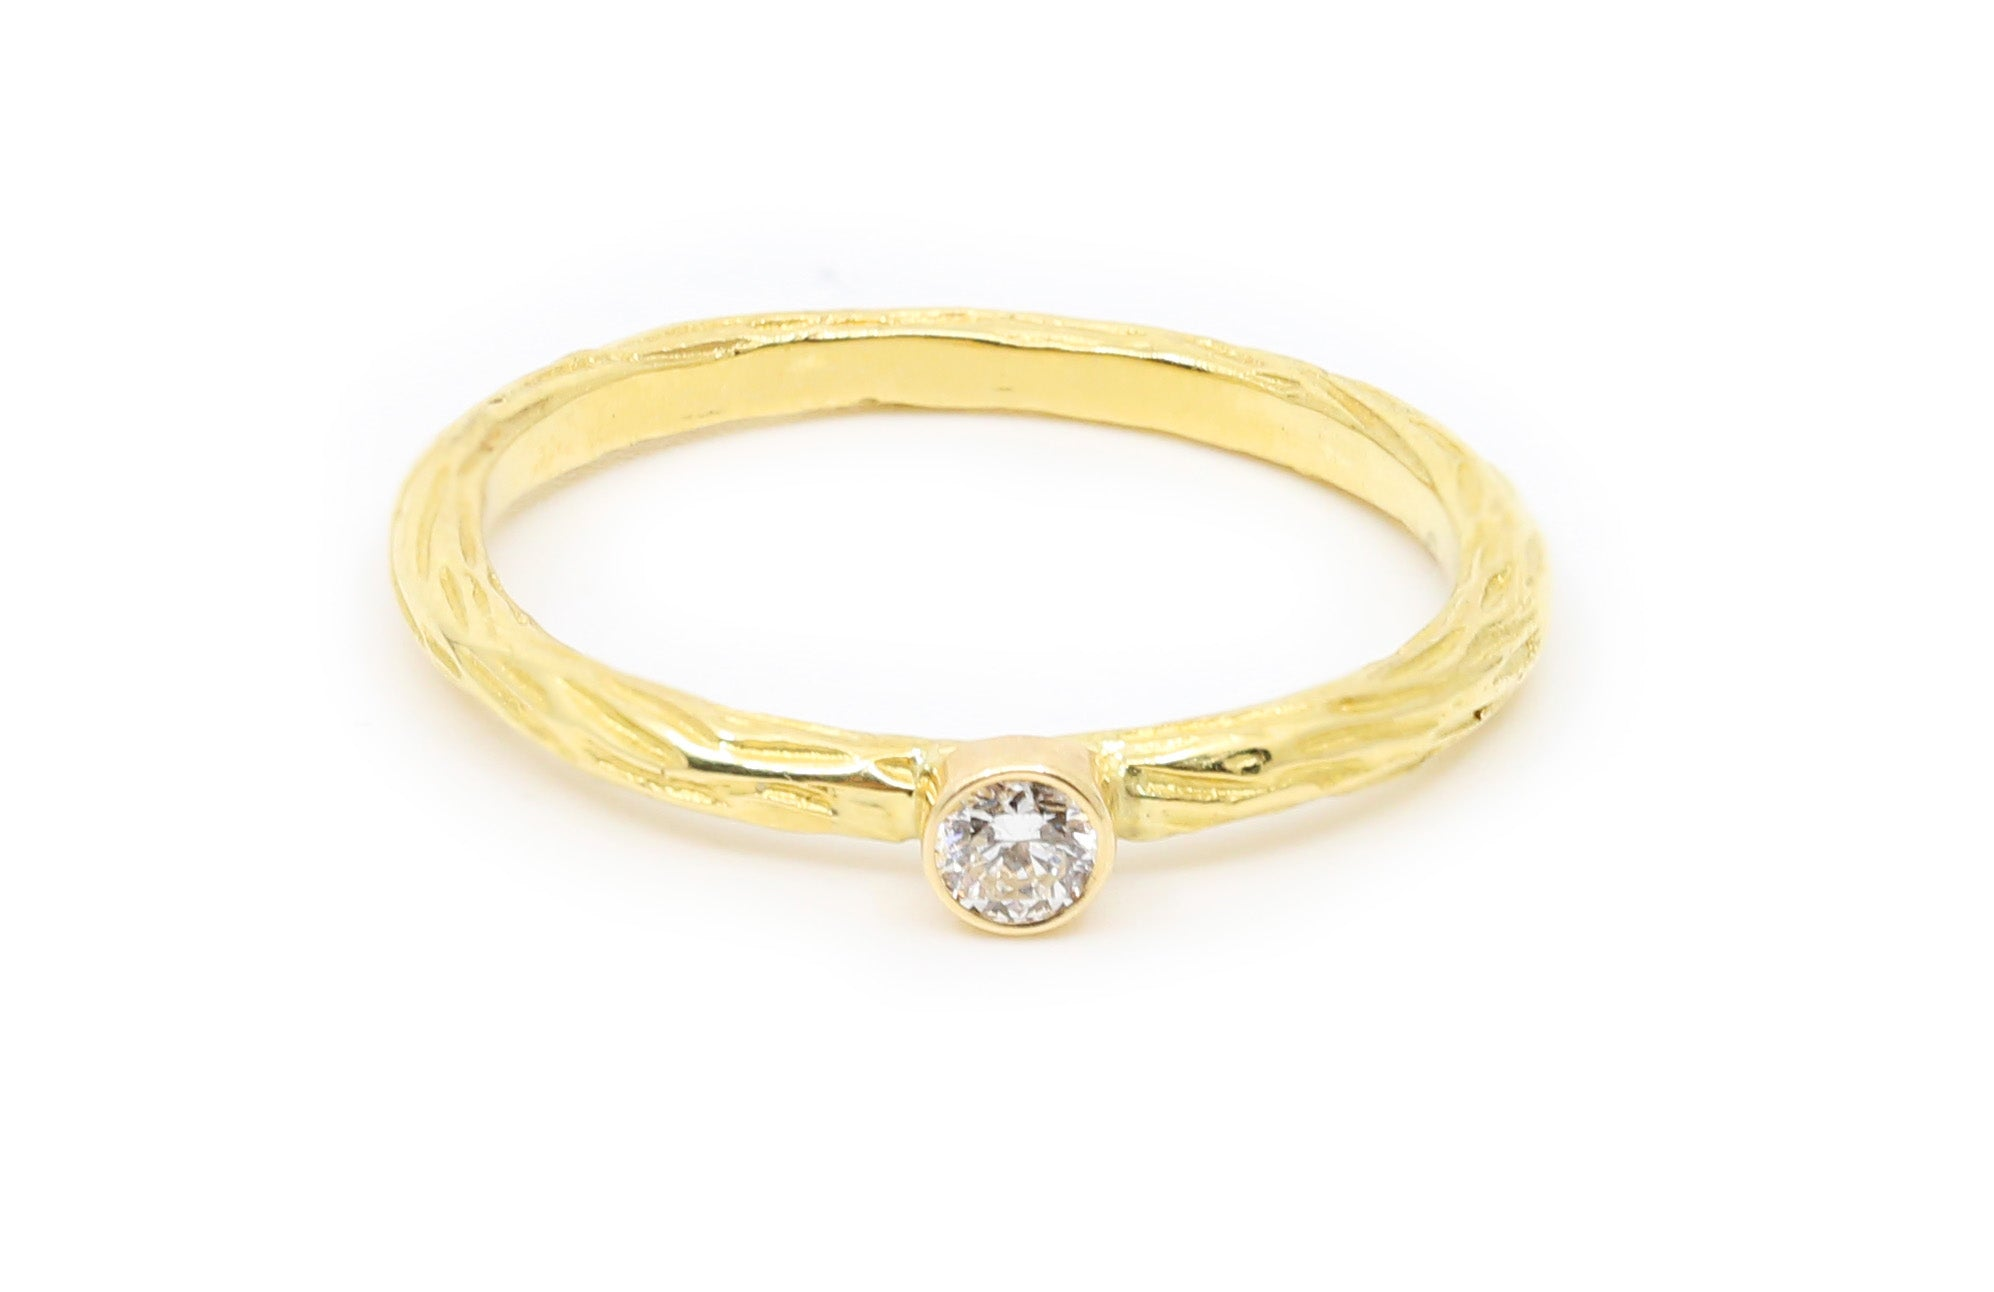 18k Yellow Gold with 0.10ct White Diamond Stacker Ring